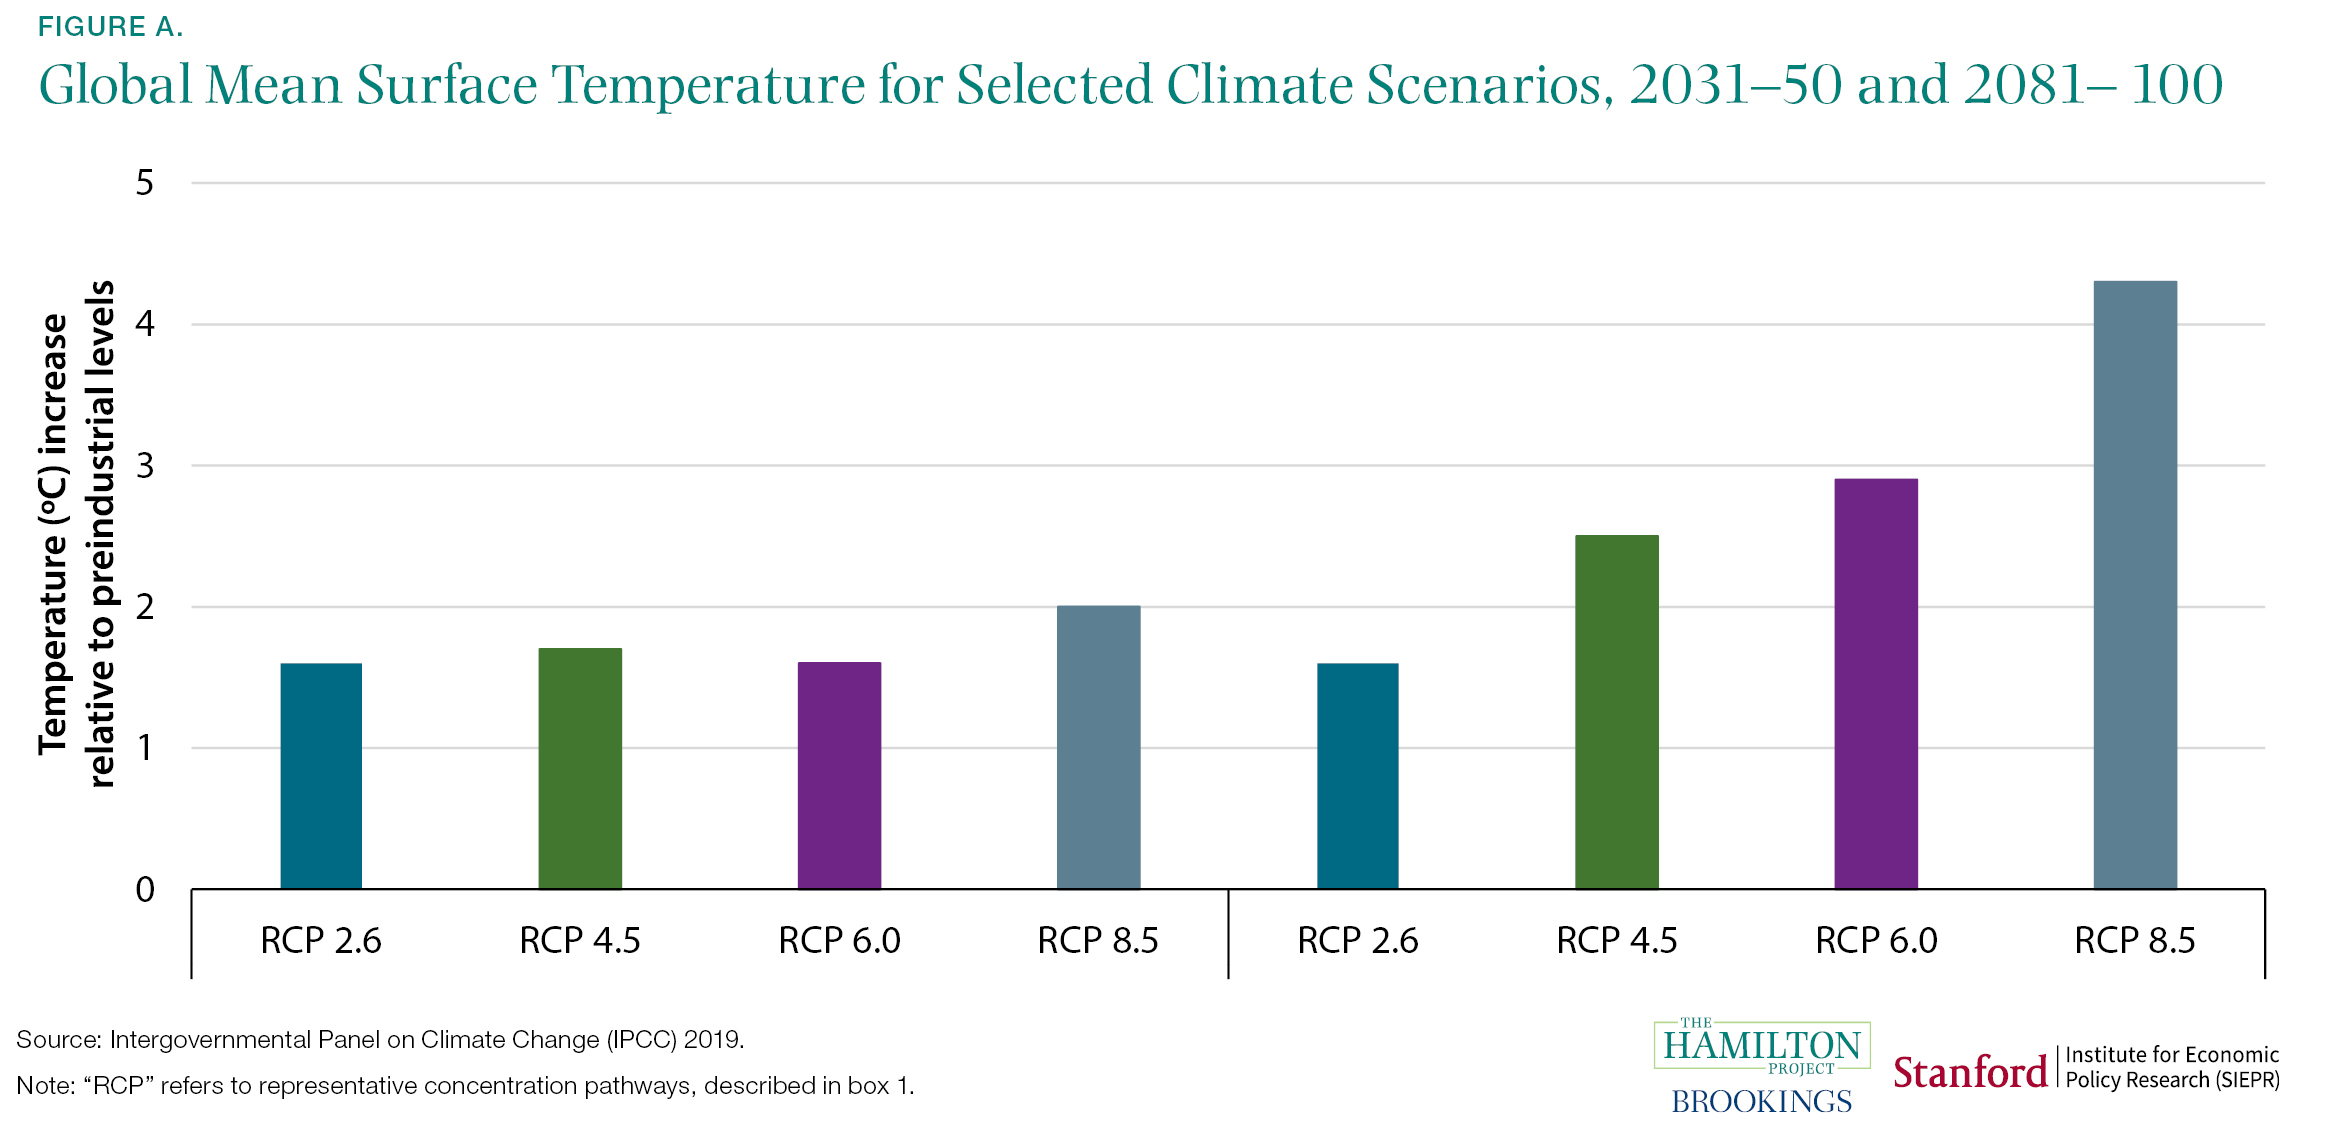 Global Mean Surface Temperature for Selected Climate Scenarios, 2031-50 and 2081-100